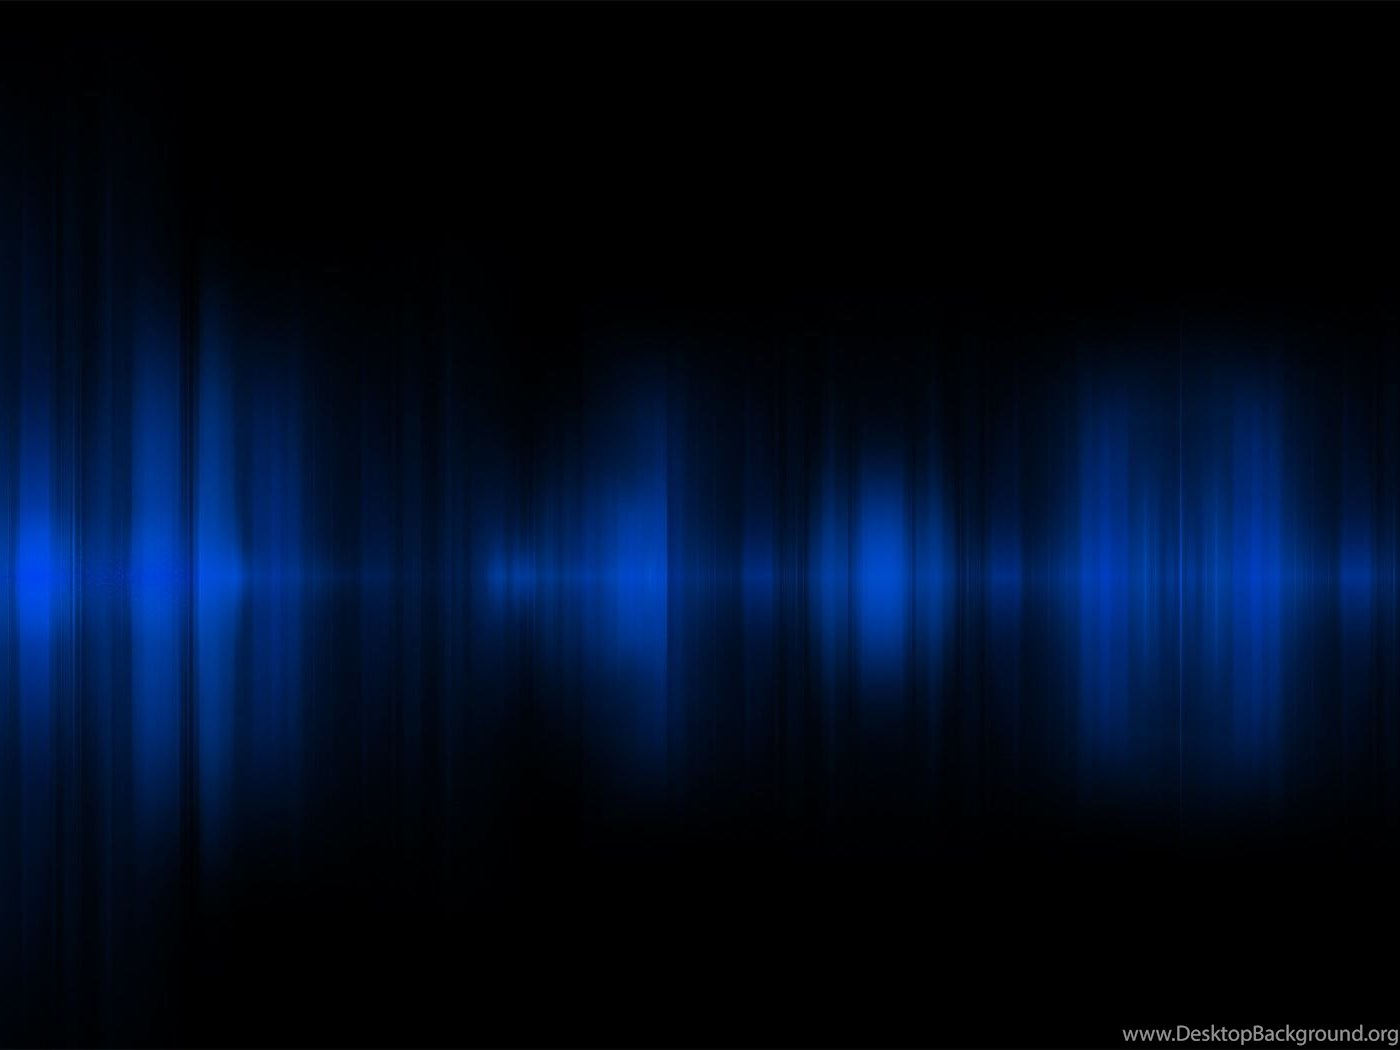 Black And Blue Abstract Wallpapers Downloads 1212 Hd Wallpapers